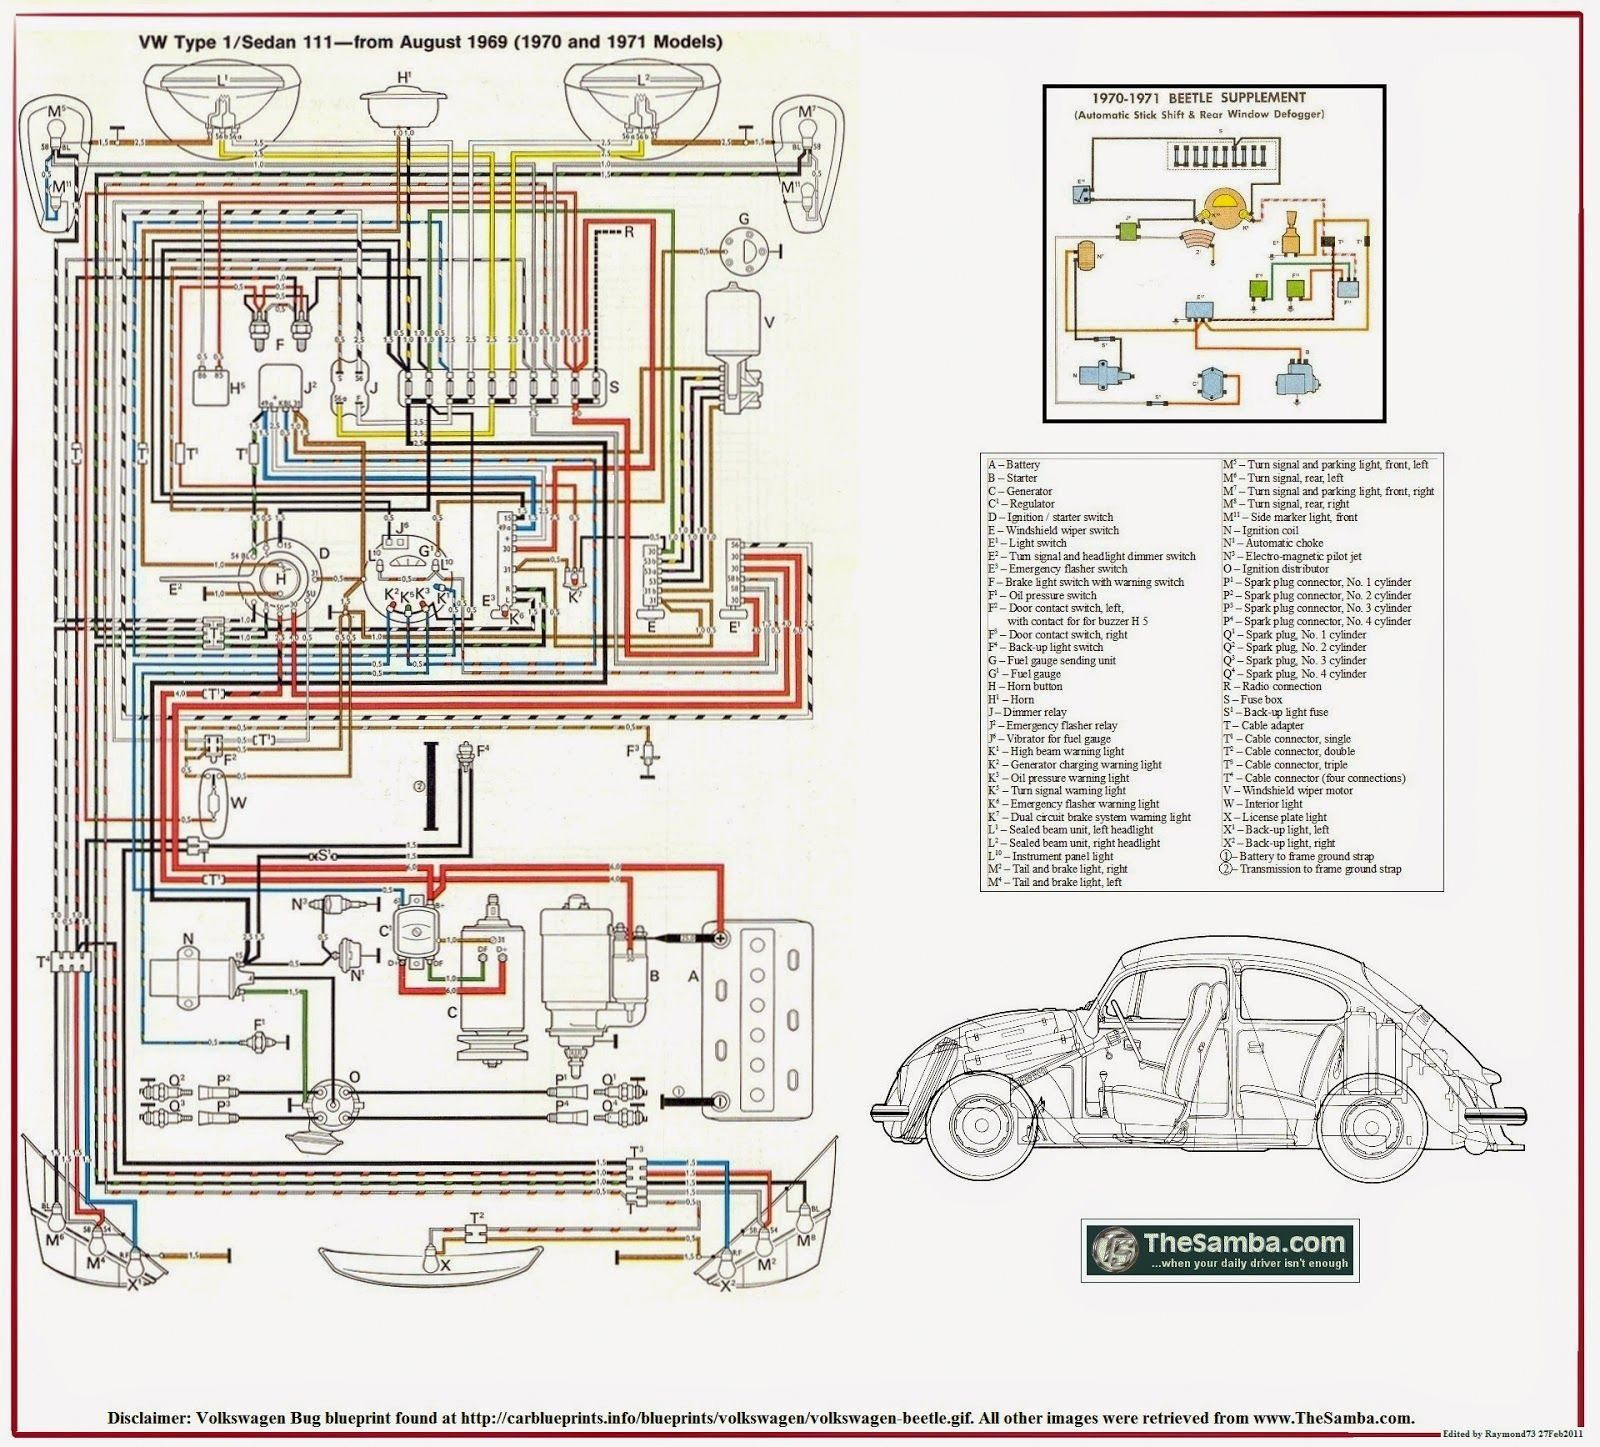 For Volkswagen Vw Enthusiasts Into Vw Beetle Type 1 Repair Restoration The Type 1 Wiring Diagrams And Specifications Be Volkswagen Volkswagen Beetle Beetle